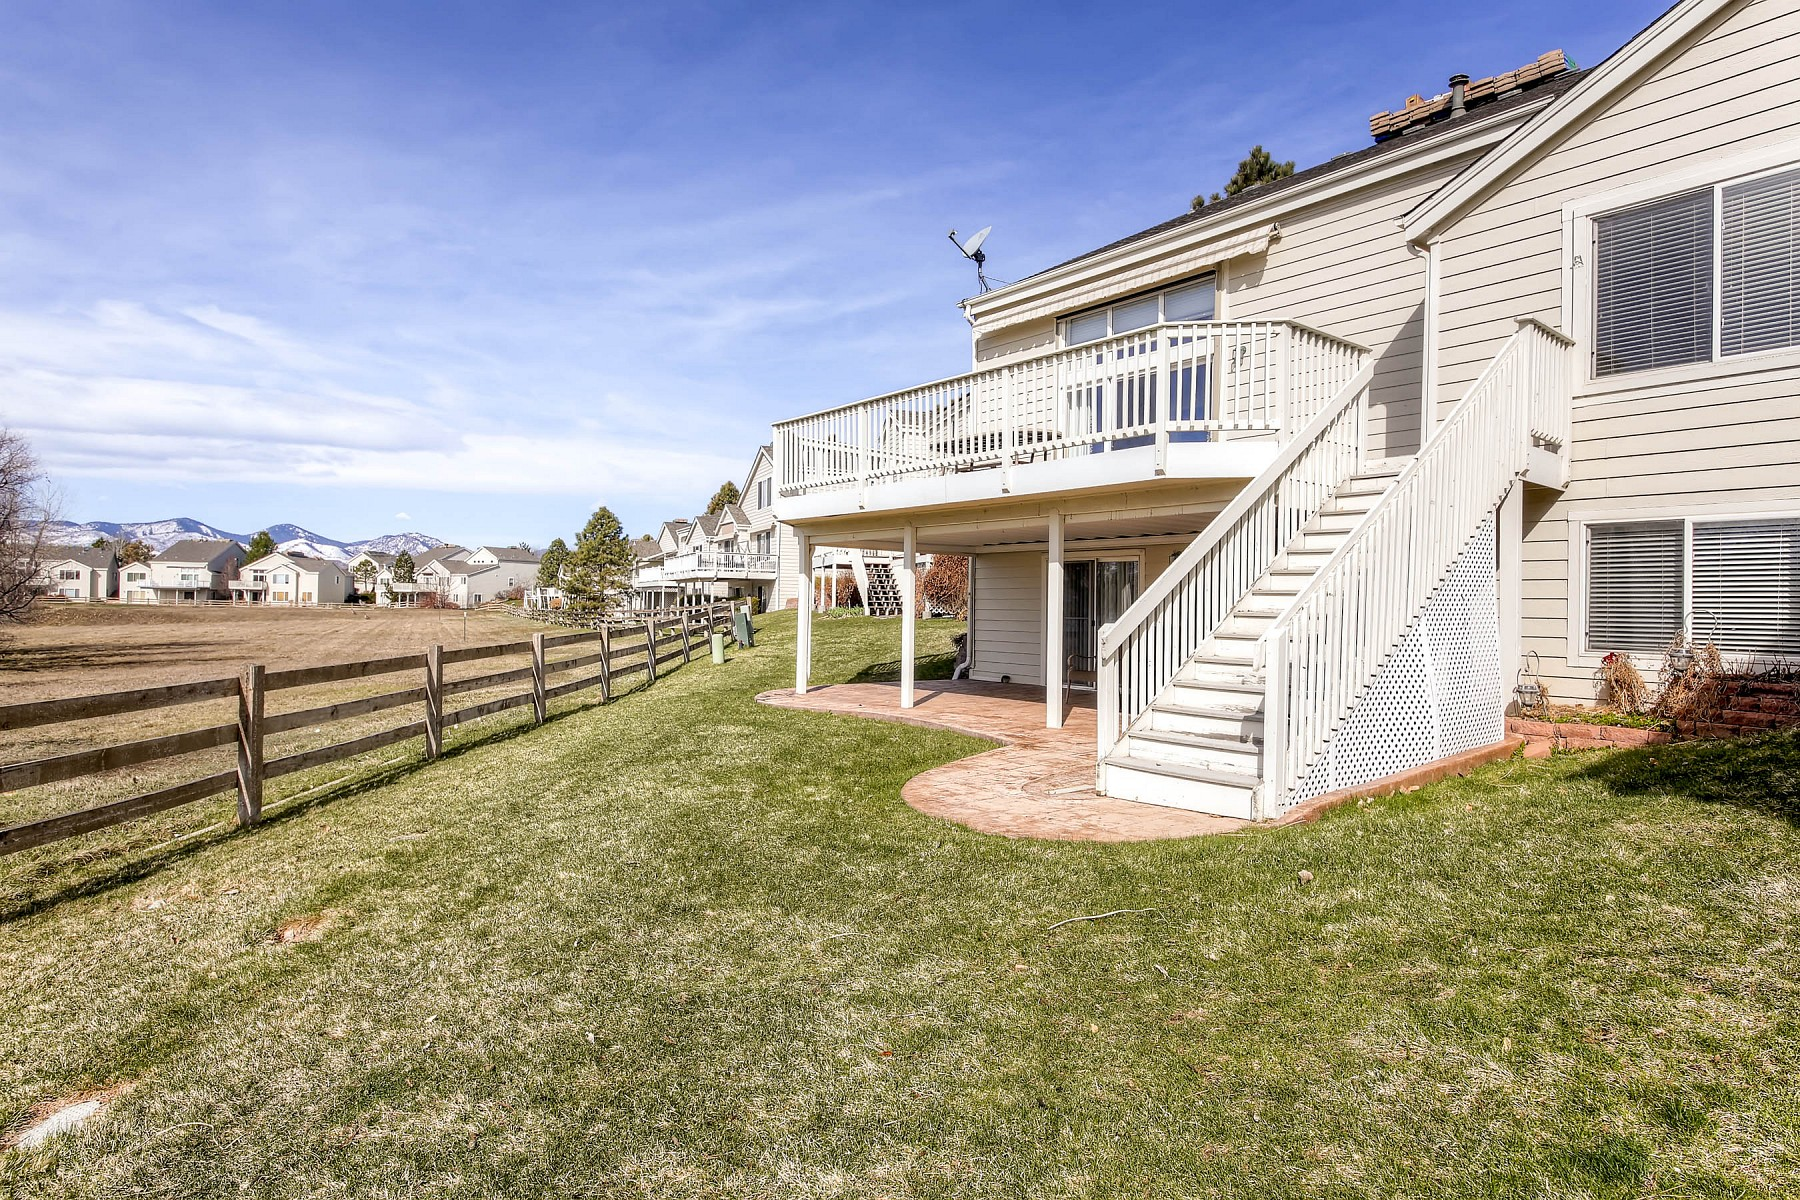 7400 West Grant Ranch Boulevard #37, Littleton, CO 80123